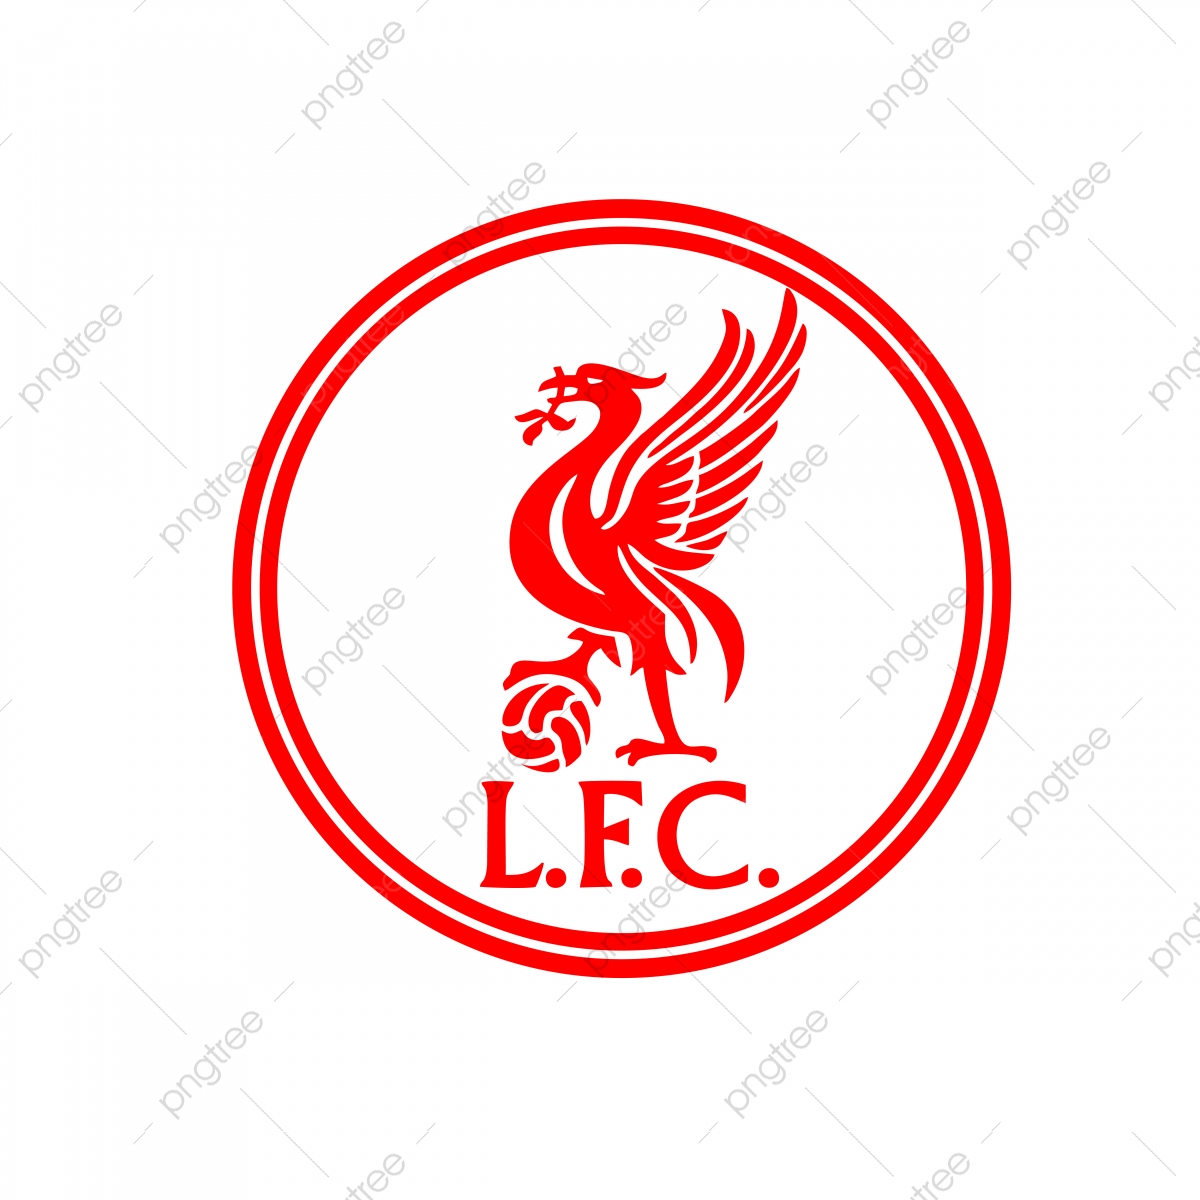 liverpool logo png vector psd and clipart with transparent background for free download pngtree https pngtree com freepng liverpool logo design circle concept for supporter 4316674 html